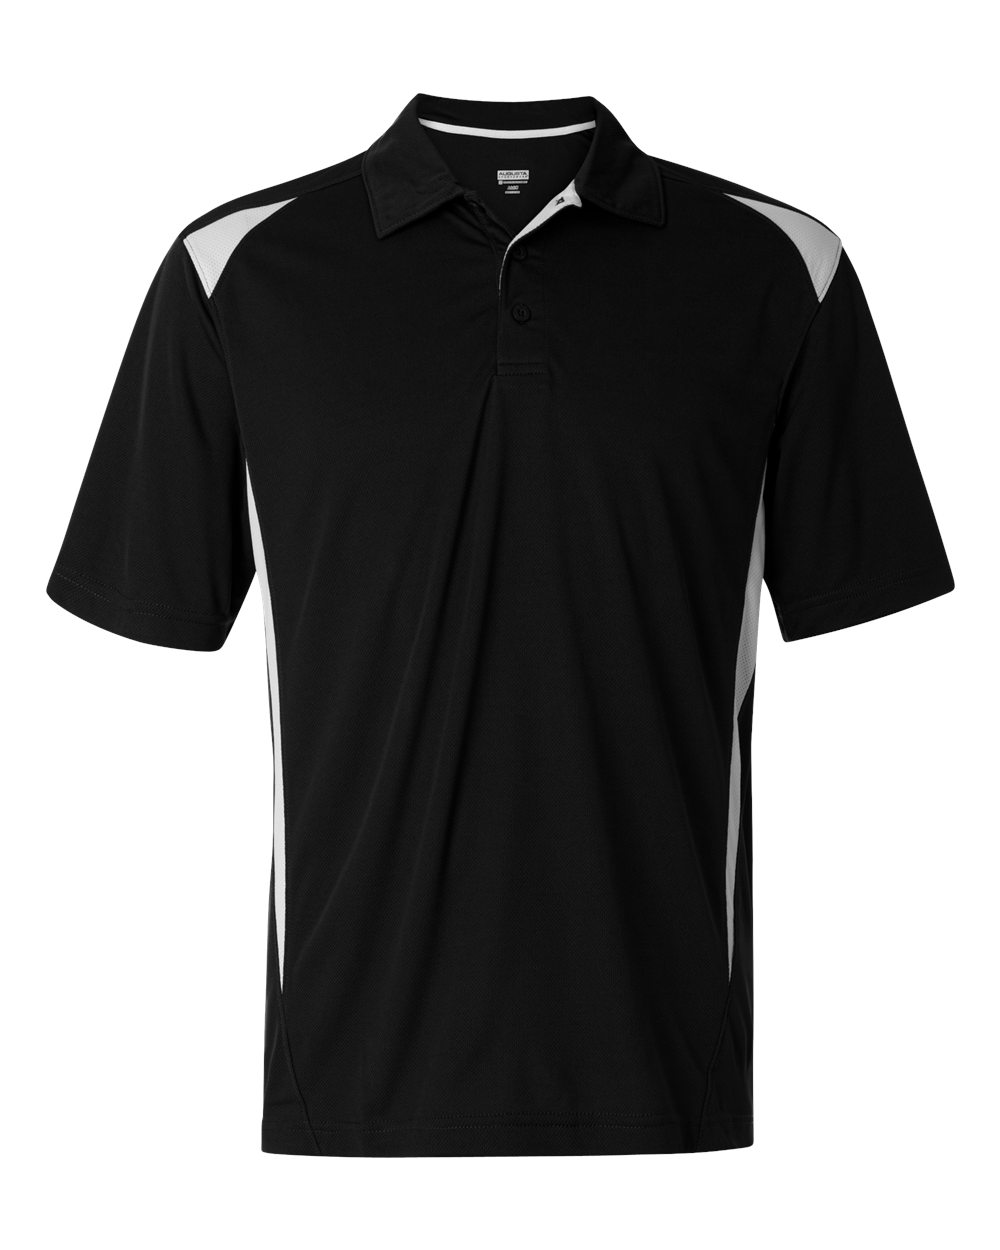 miniature 6 - Augusta-Mens-Sportswear-Two-Tone-Premier-Sport-Shirt-5012-up-to-3XL